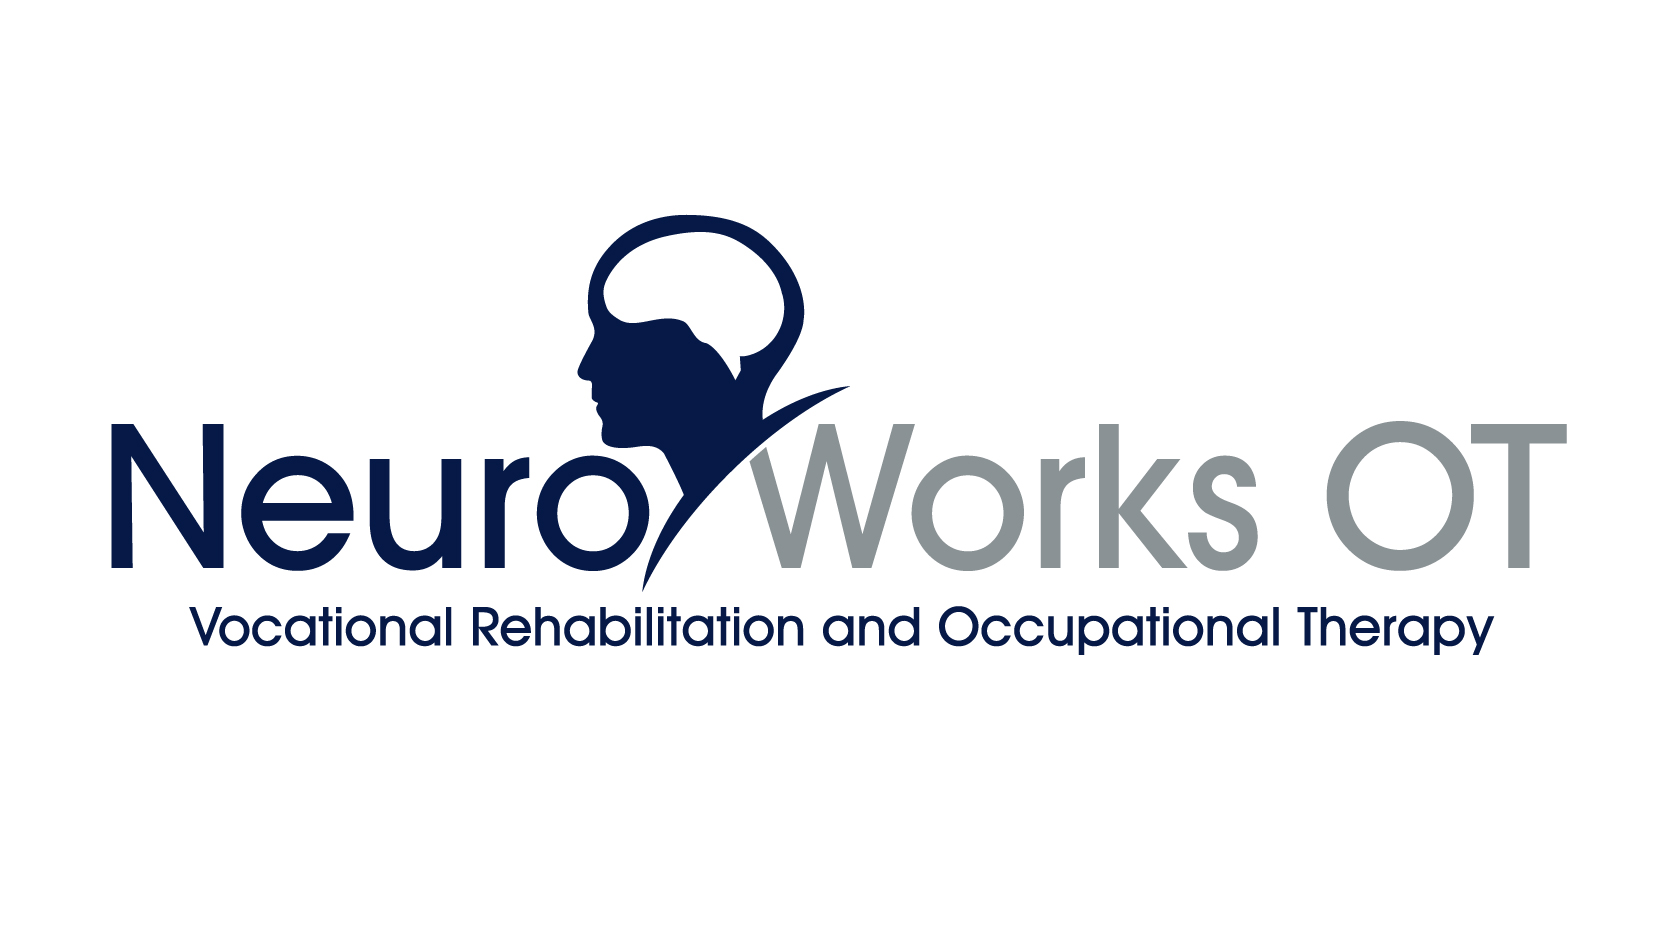 NeuroWorks OT Ltd